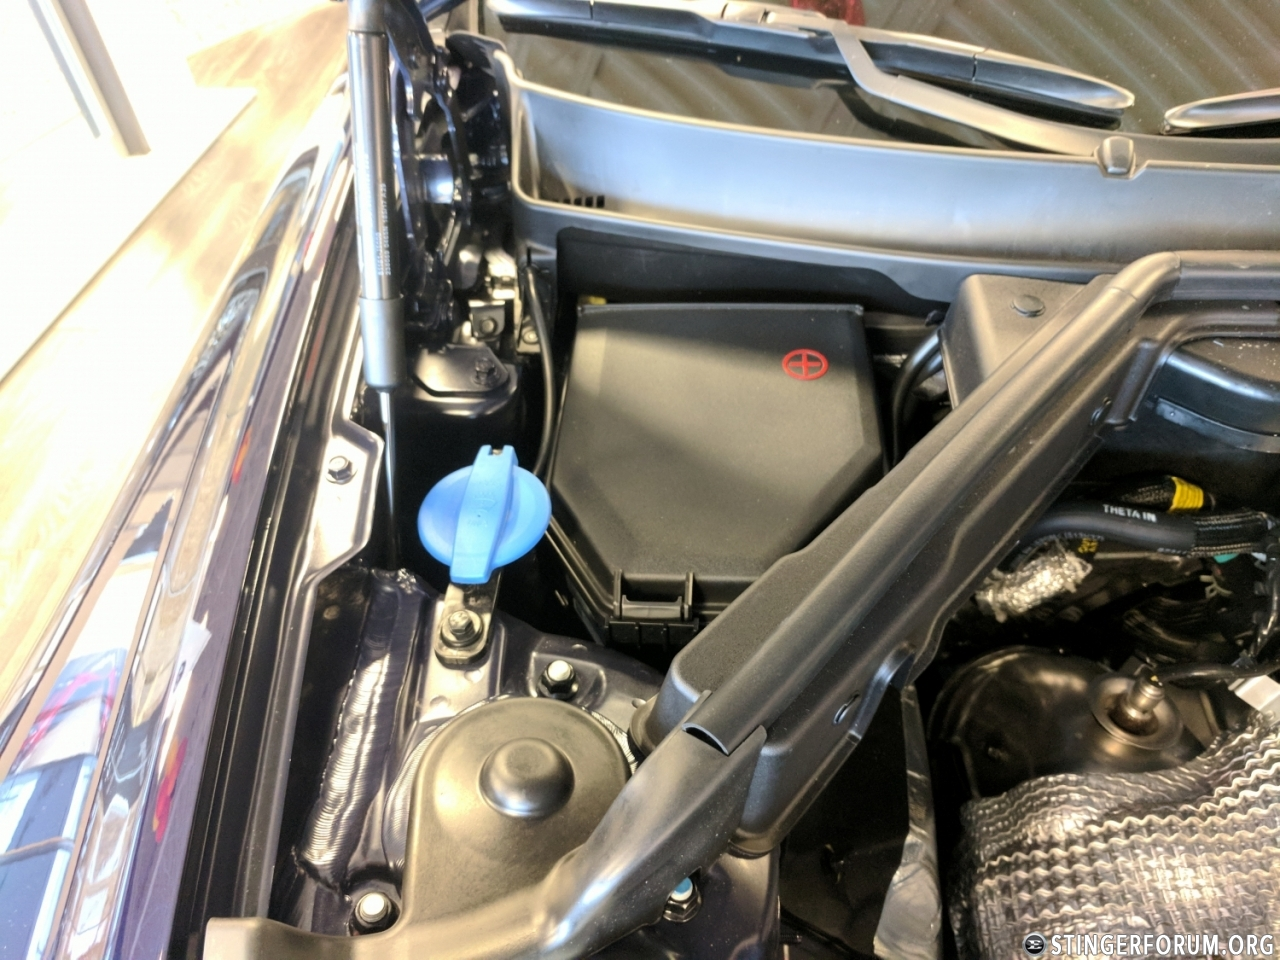 Buick Regal: Washer Fluid